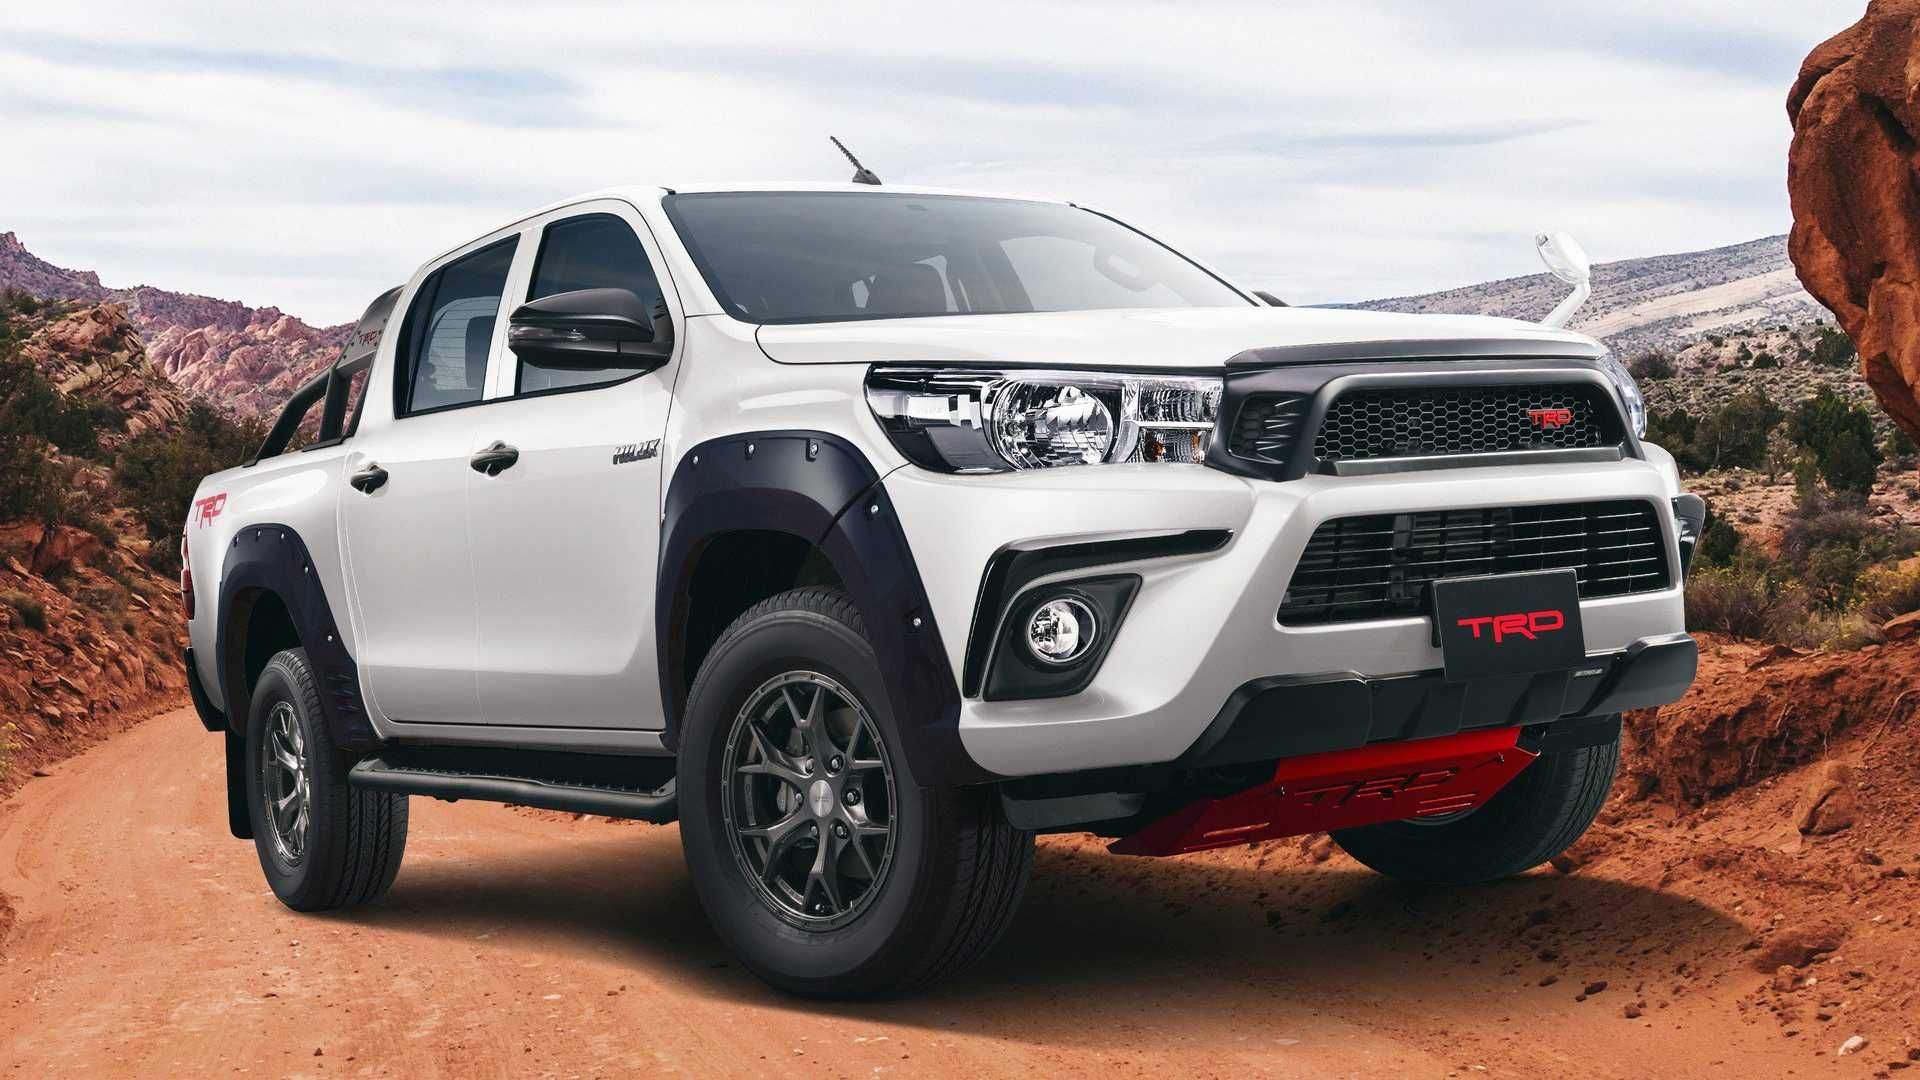 The Toyota Hilux Black Rally Edition Is A Trd Truck Done Right Toyota Hilux Toyota Toyota Pickup 4x4